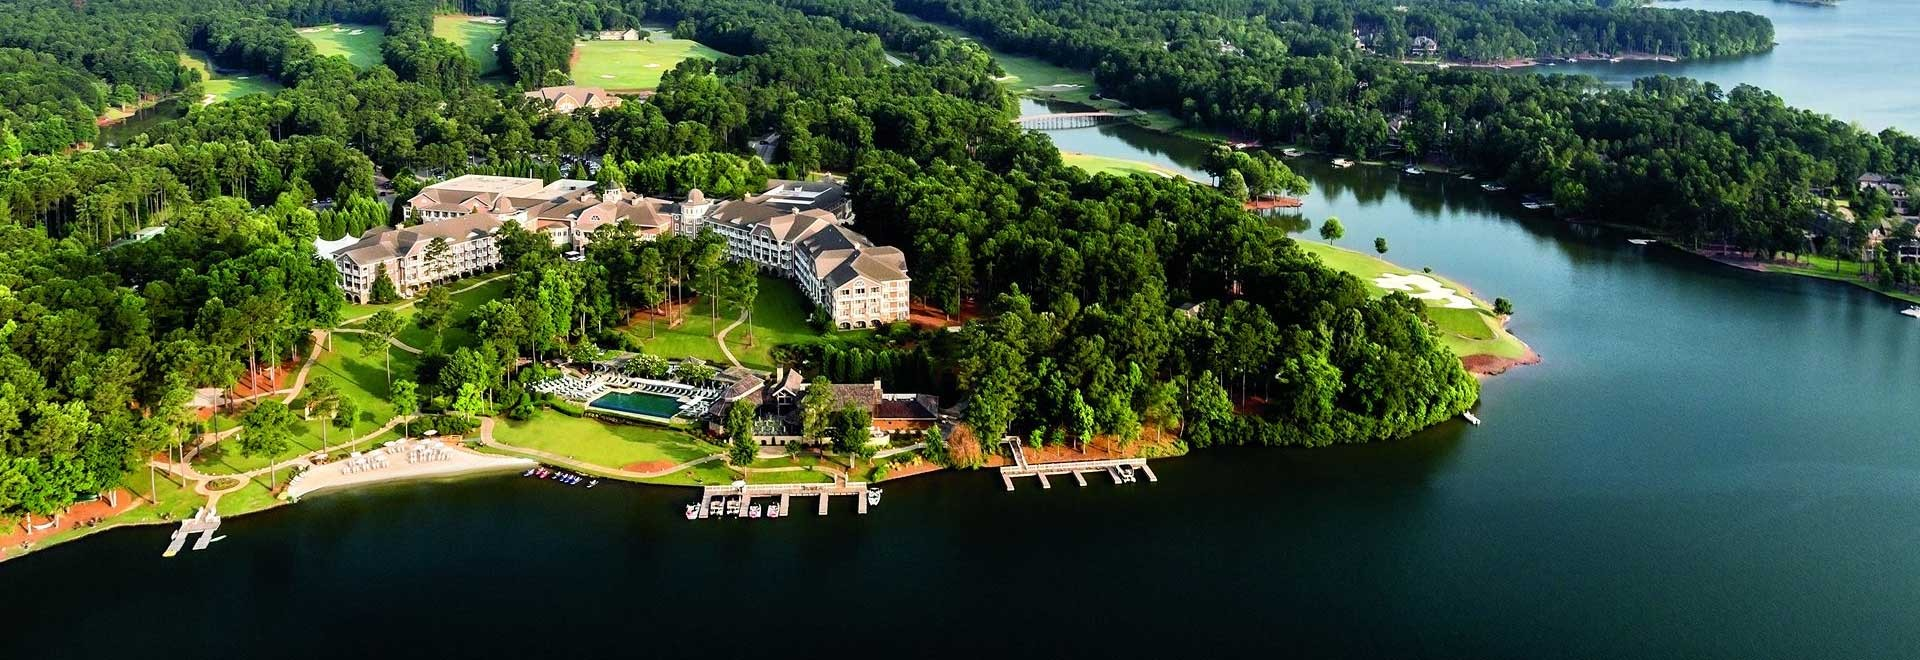 The Ritz-Carlton Reynolds, Lake Oconee, Georgia - Book. Travel. Play.